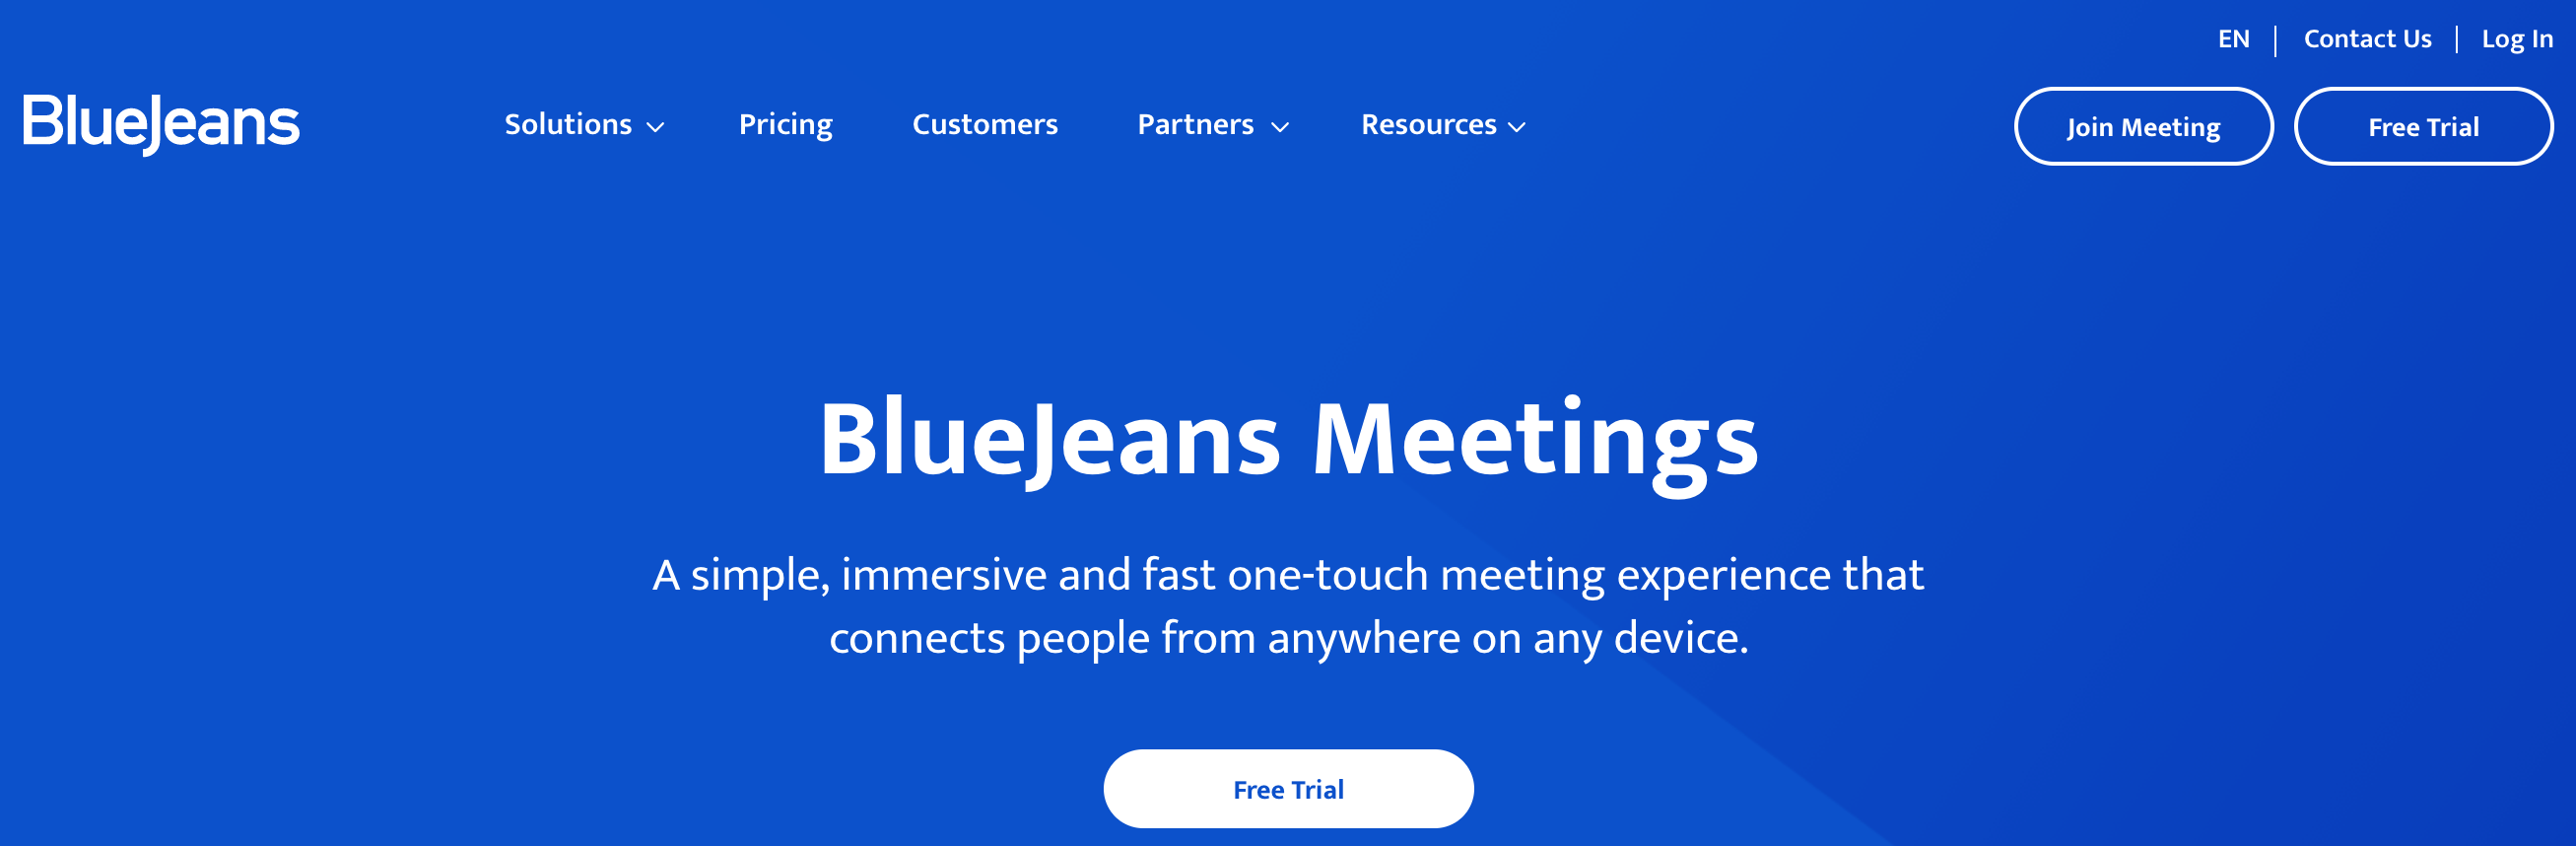 Blue Jeans is easy-to-setup and manage for conducting online meetings